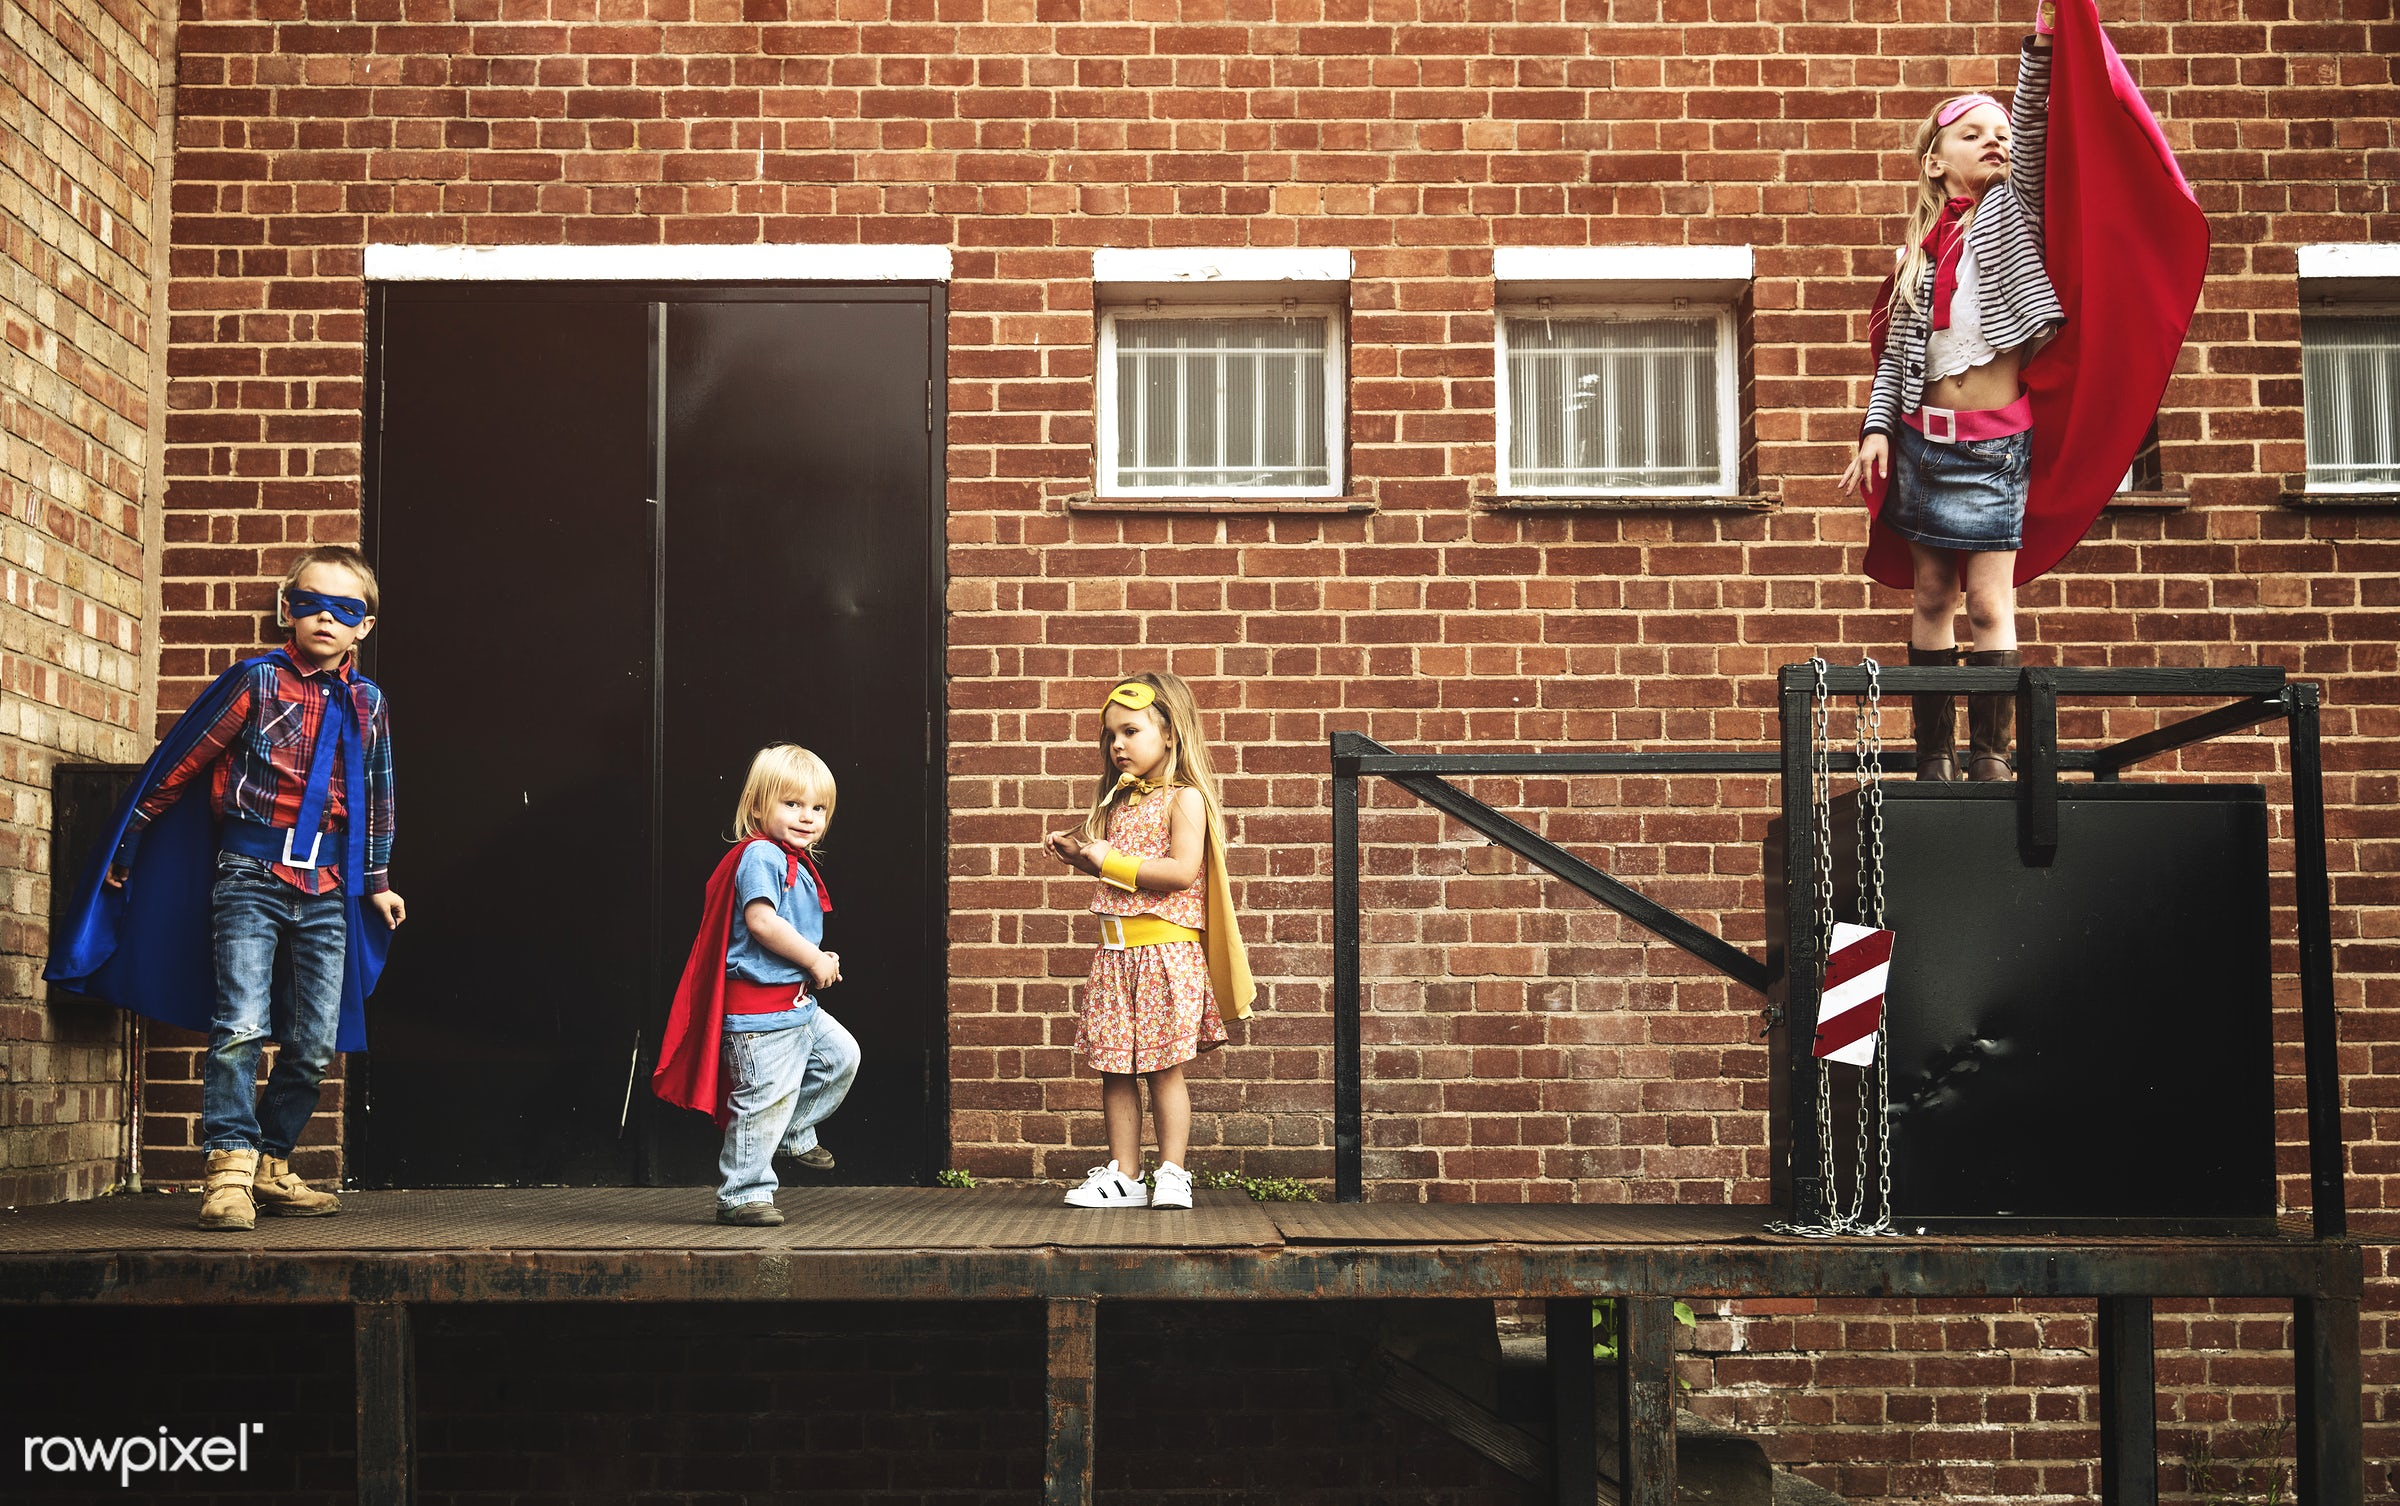 activity, aspirations, brave, brick wall, brother, building, cheerful, child, childhood, colourful, confidence, costume,...